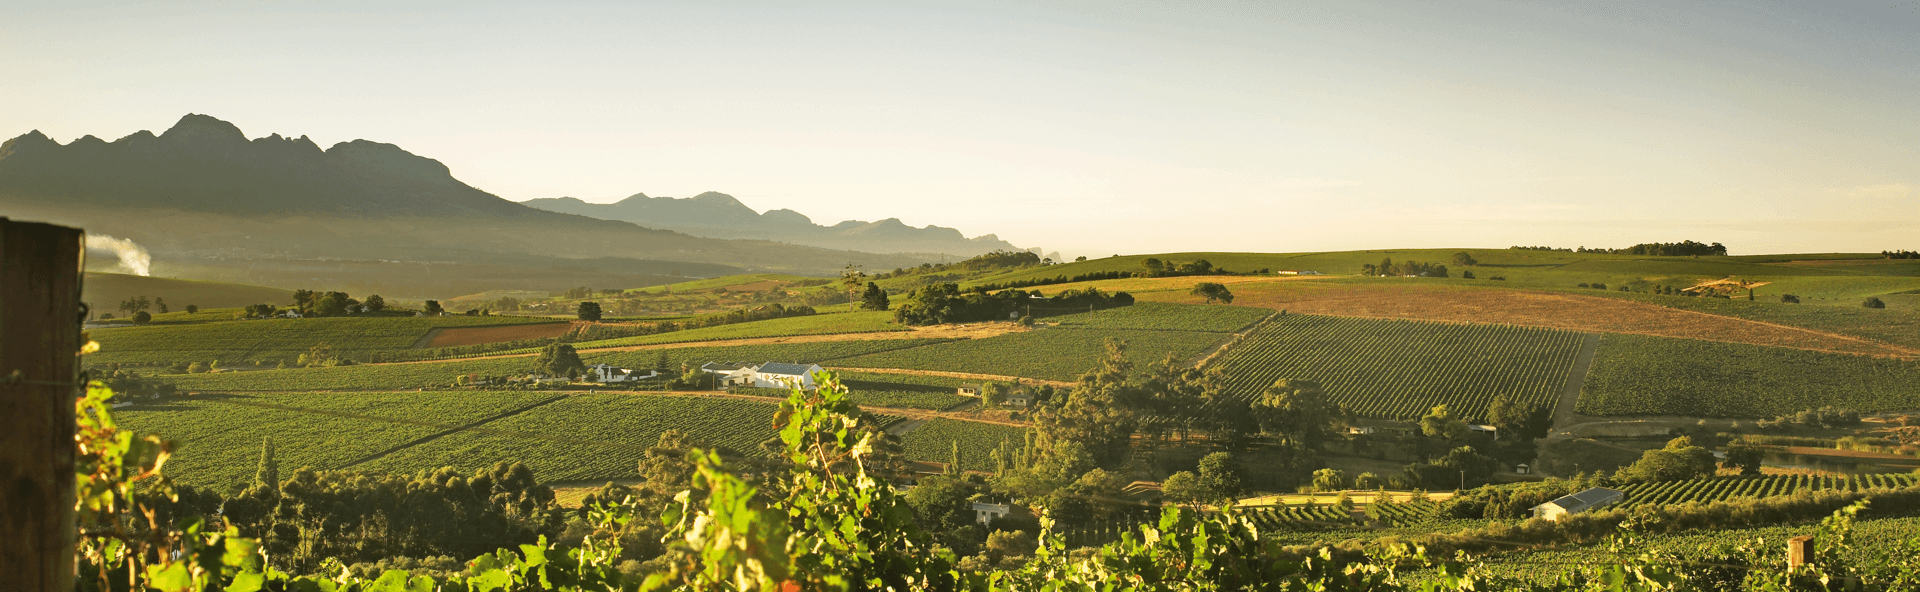 Landscape of hills, vineyards and mountains.